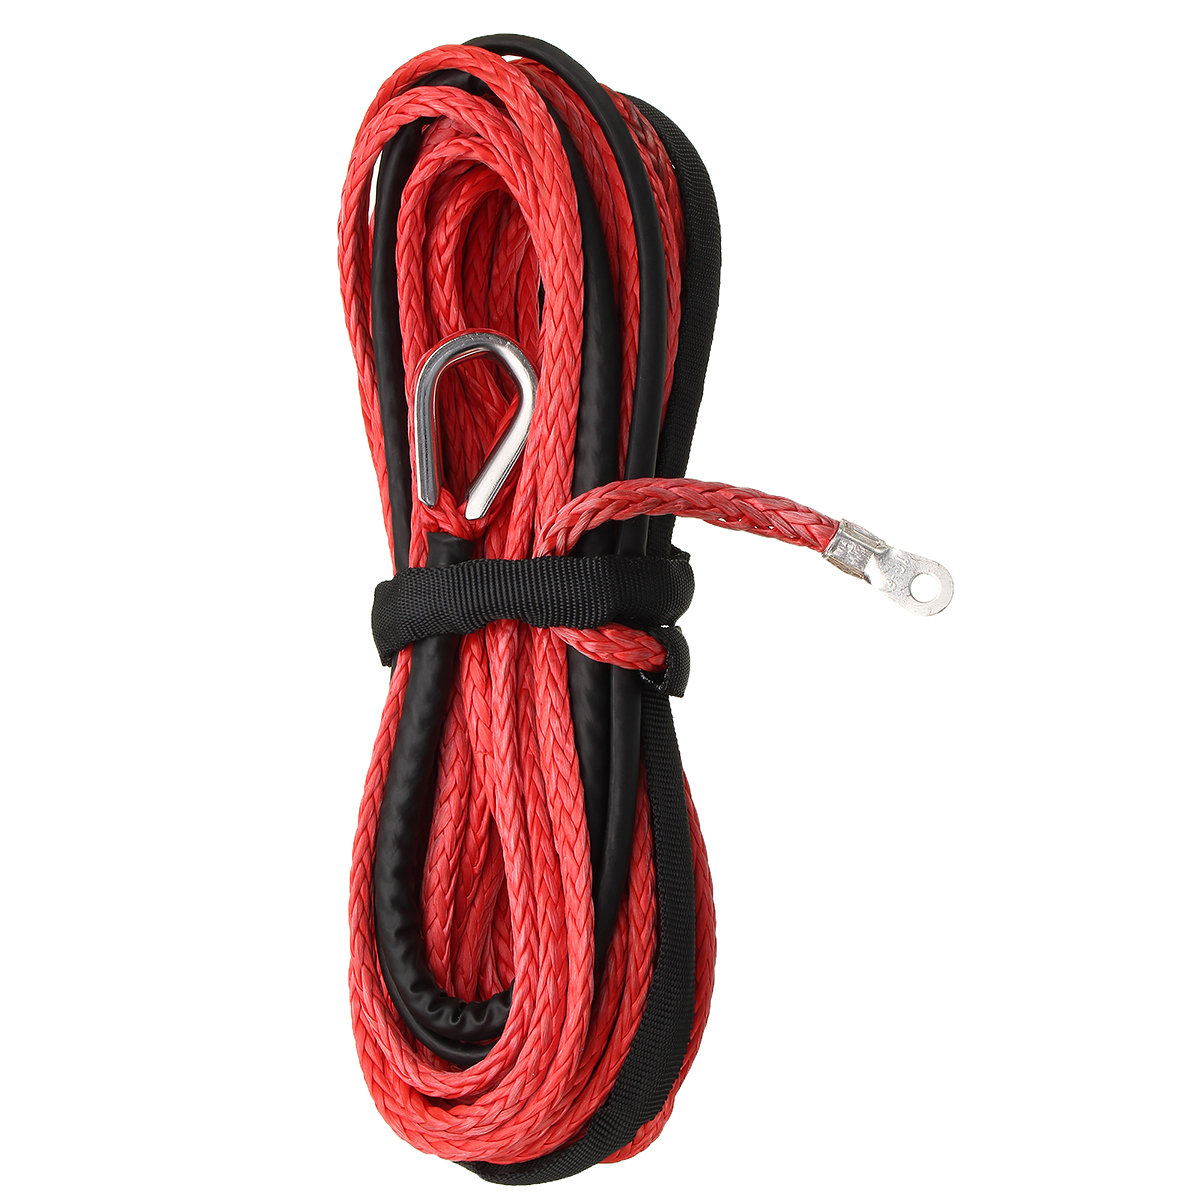 15m Car Road Vehicle Synthetic Winch Line Cable Rope 5500+ LBs + Sheath For ATV UTV